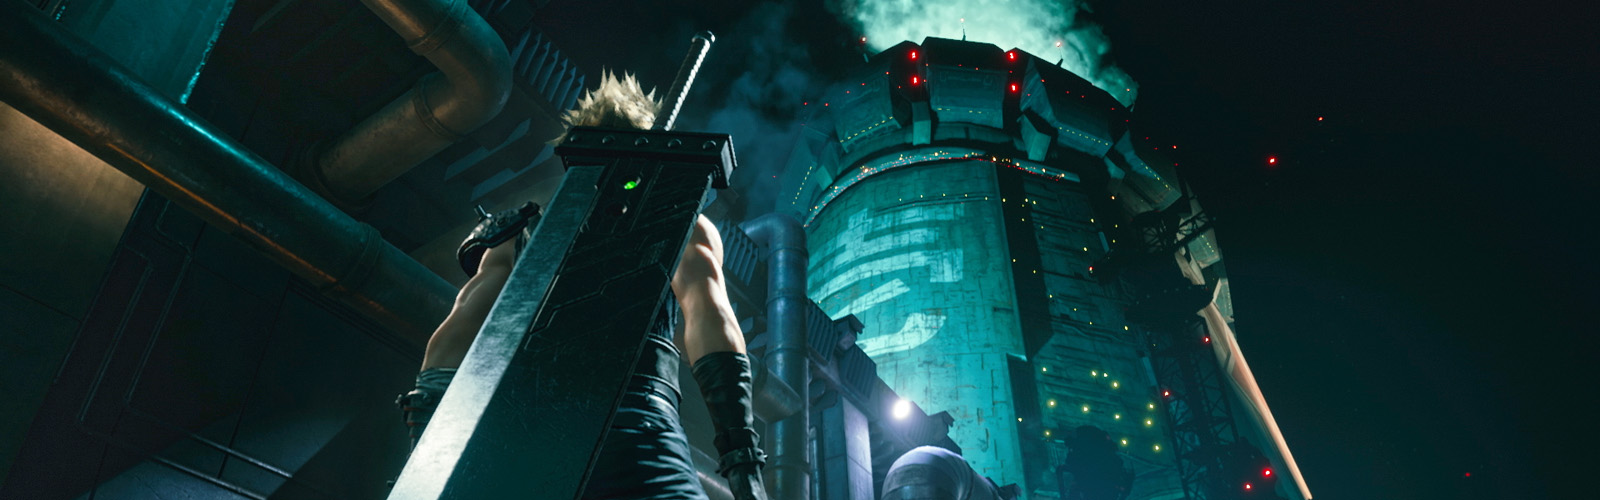 Final Fantasy VII Remake Demo Impressions